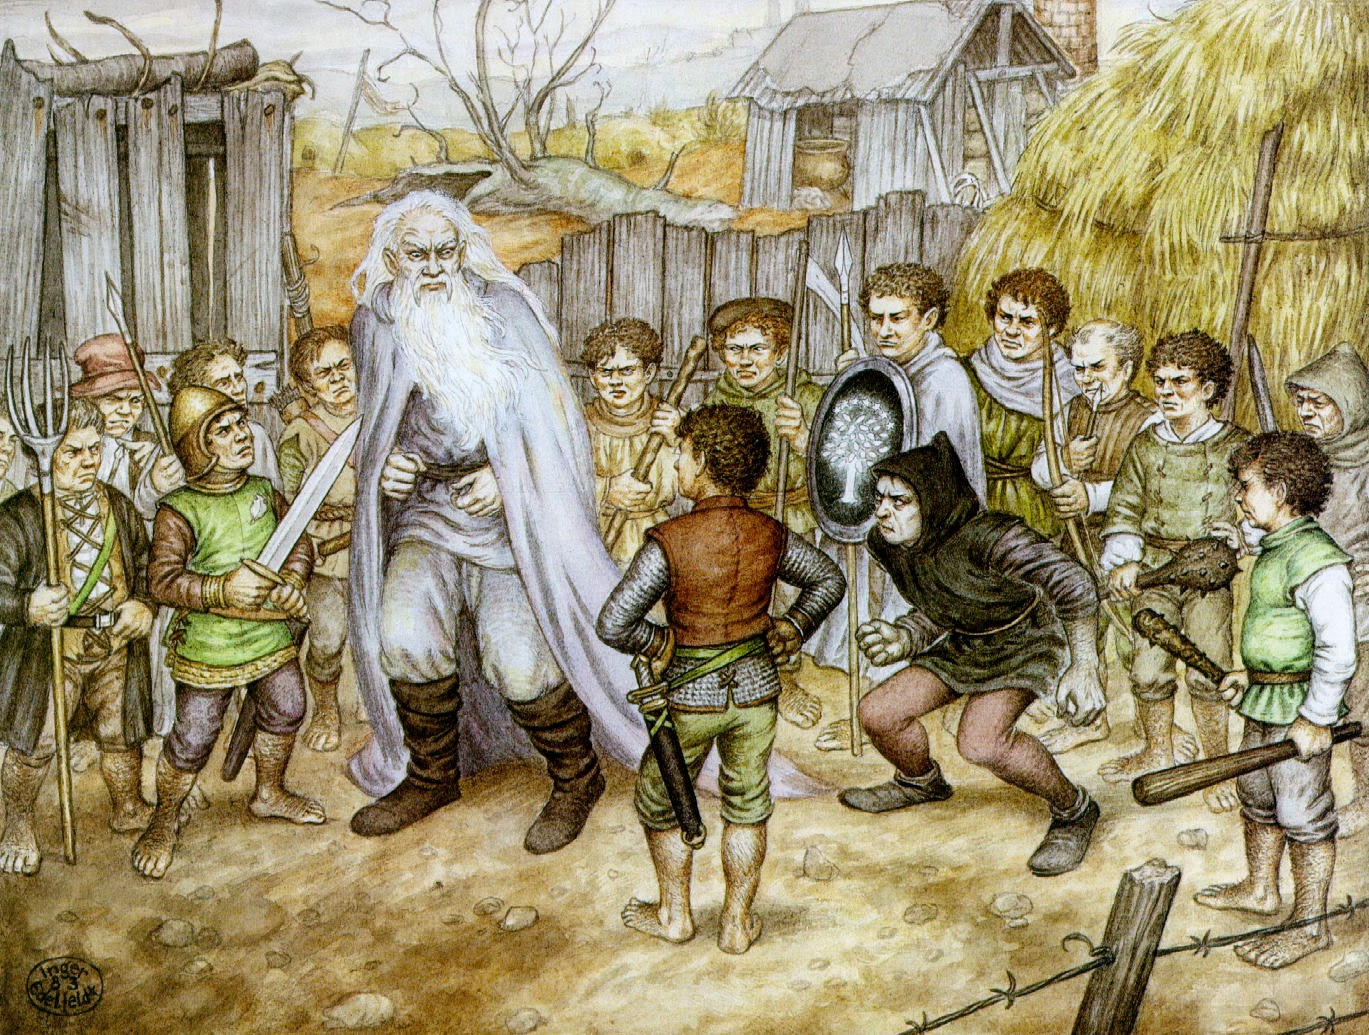 Deli Frost The Return Of The King The Lord Of The Rings 3 Pdf